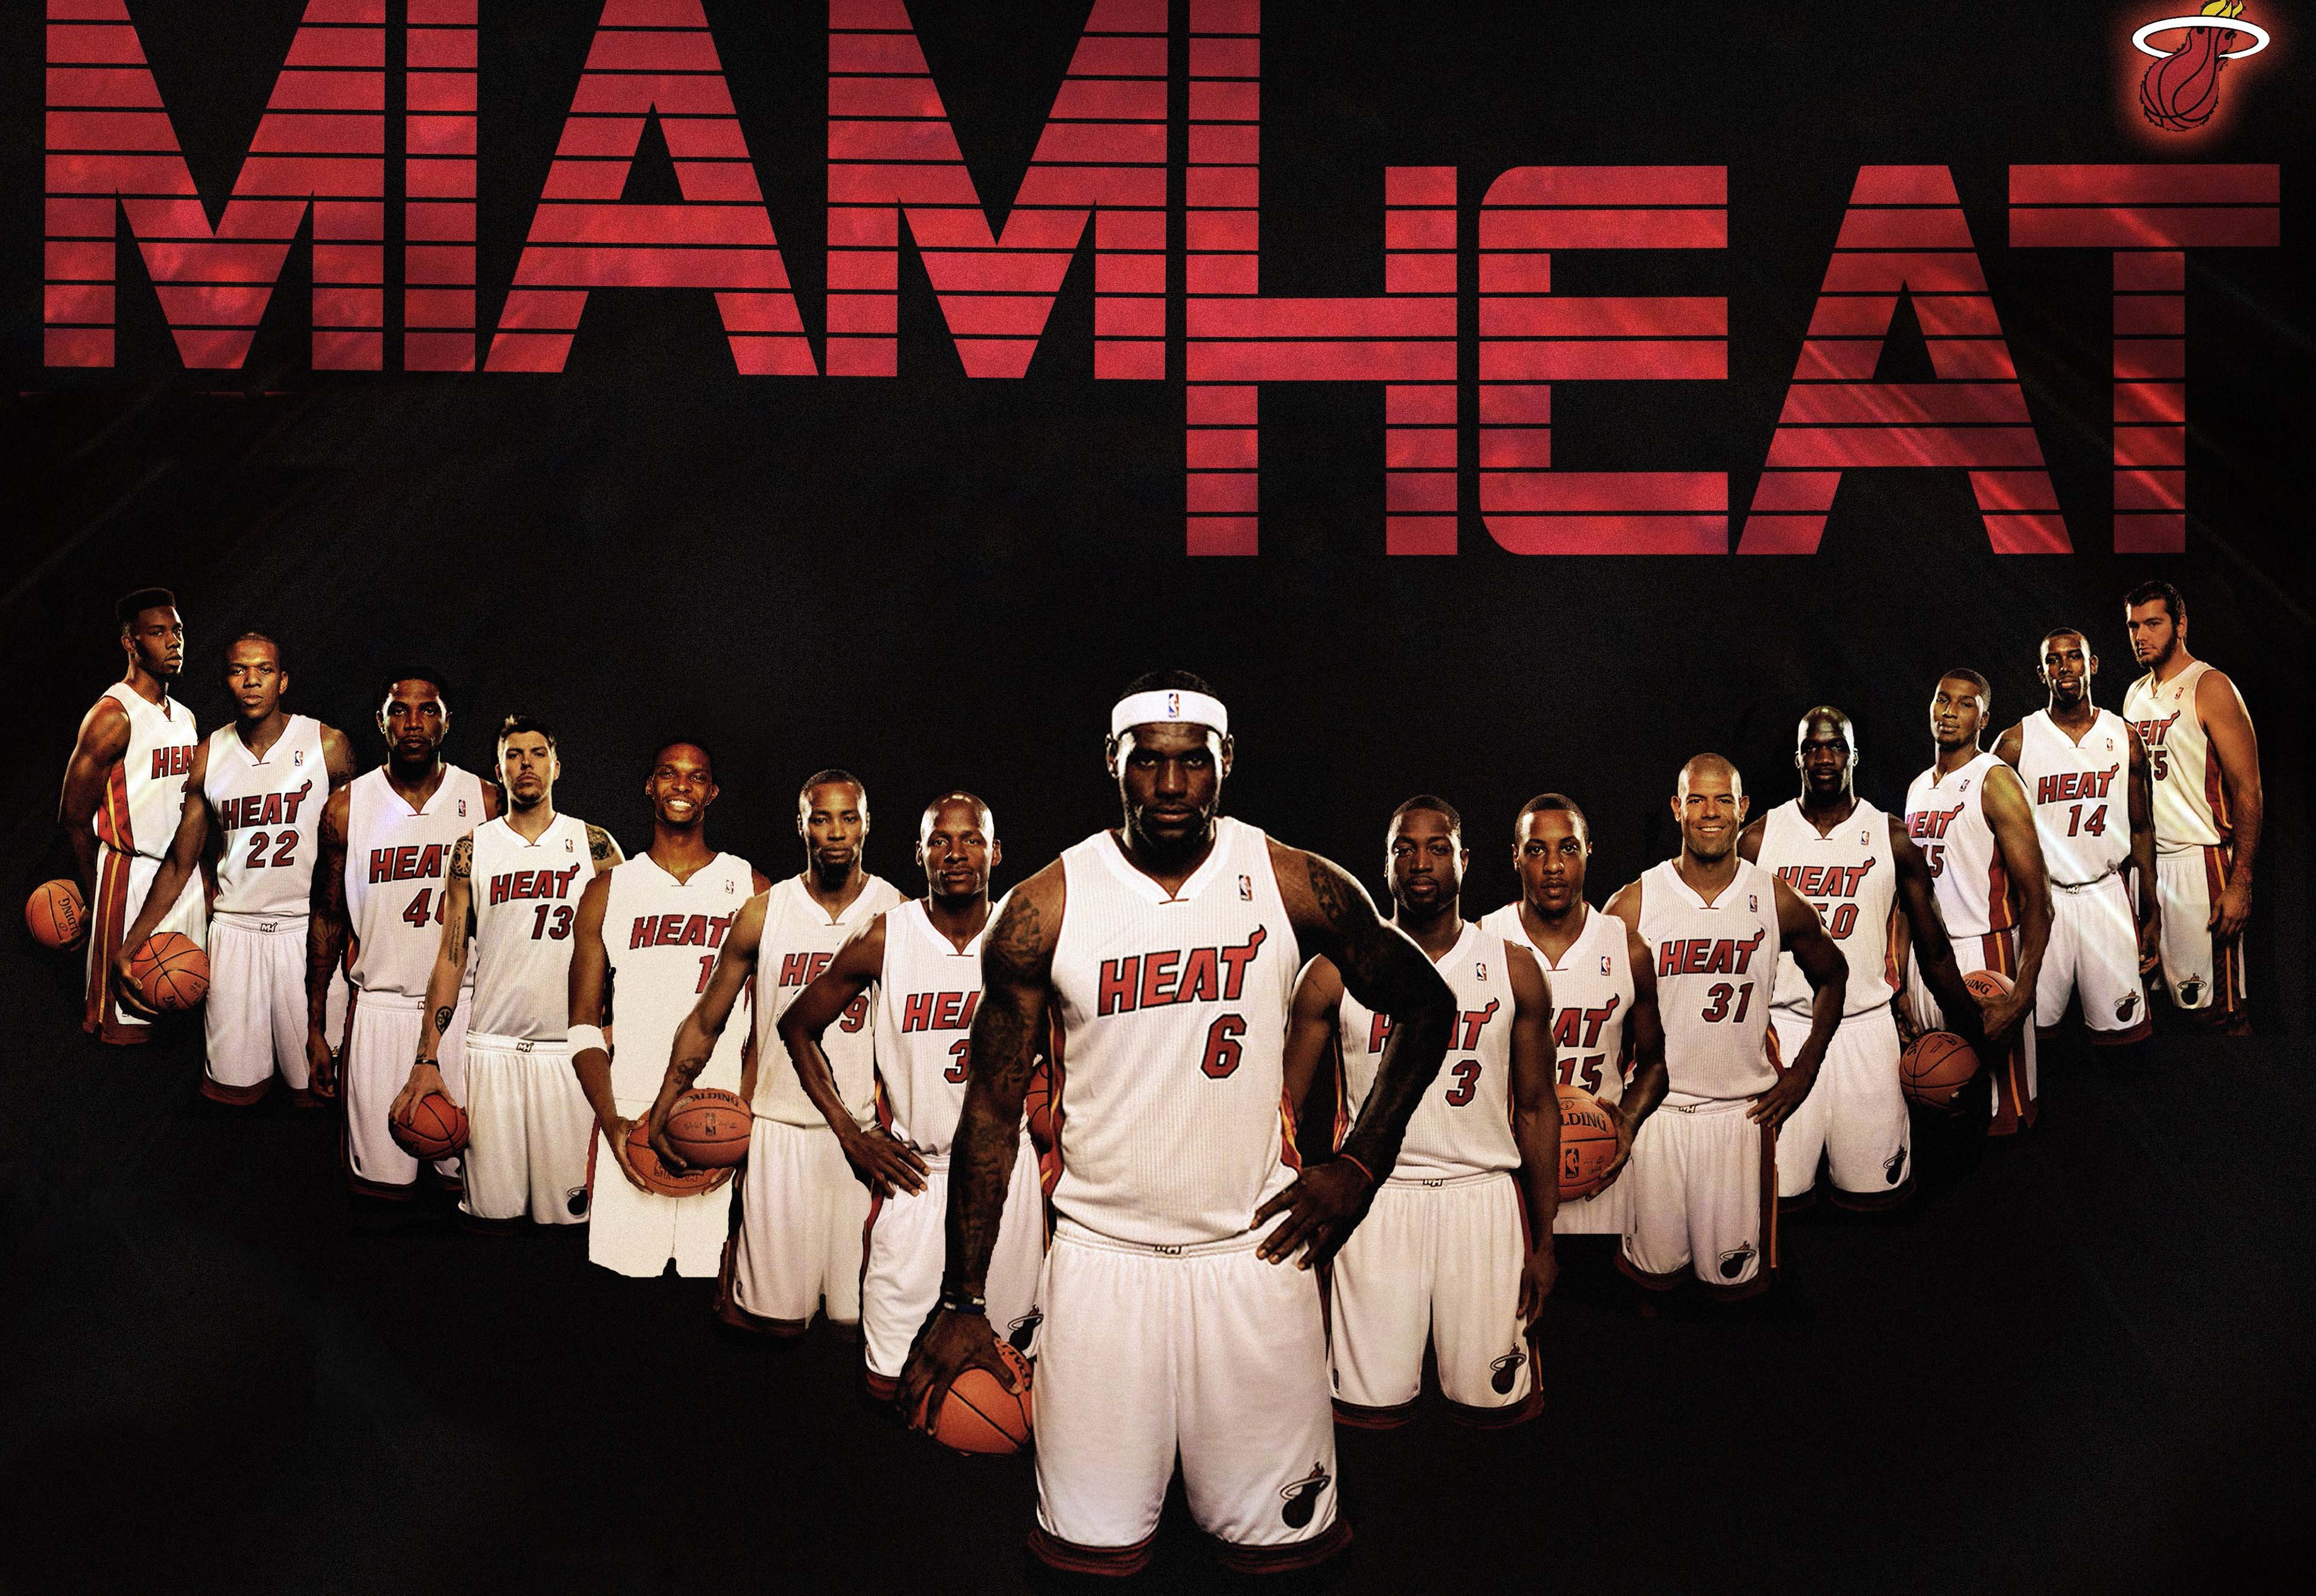 Miami Heat 2017 Wallpapers - Wallpaper Cave